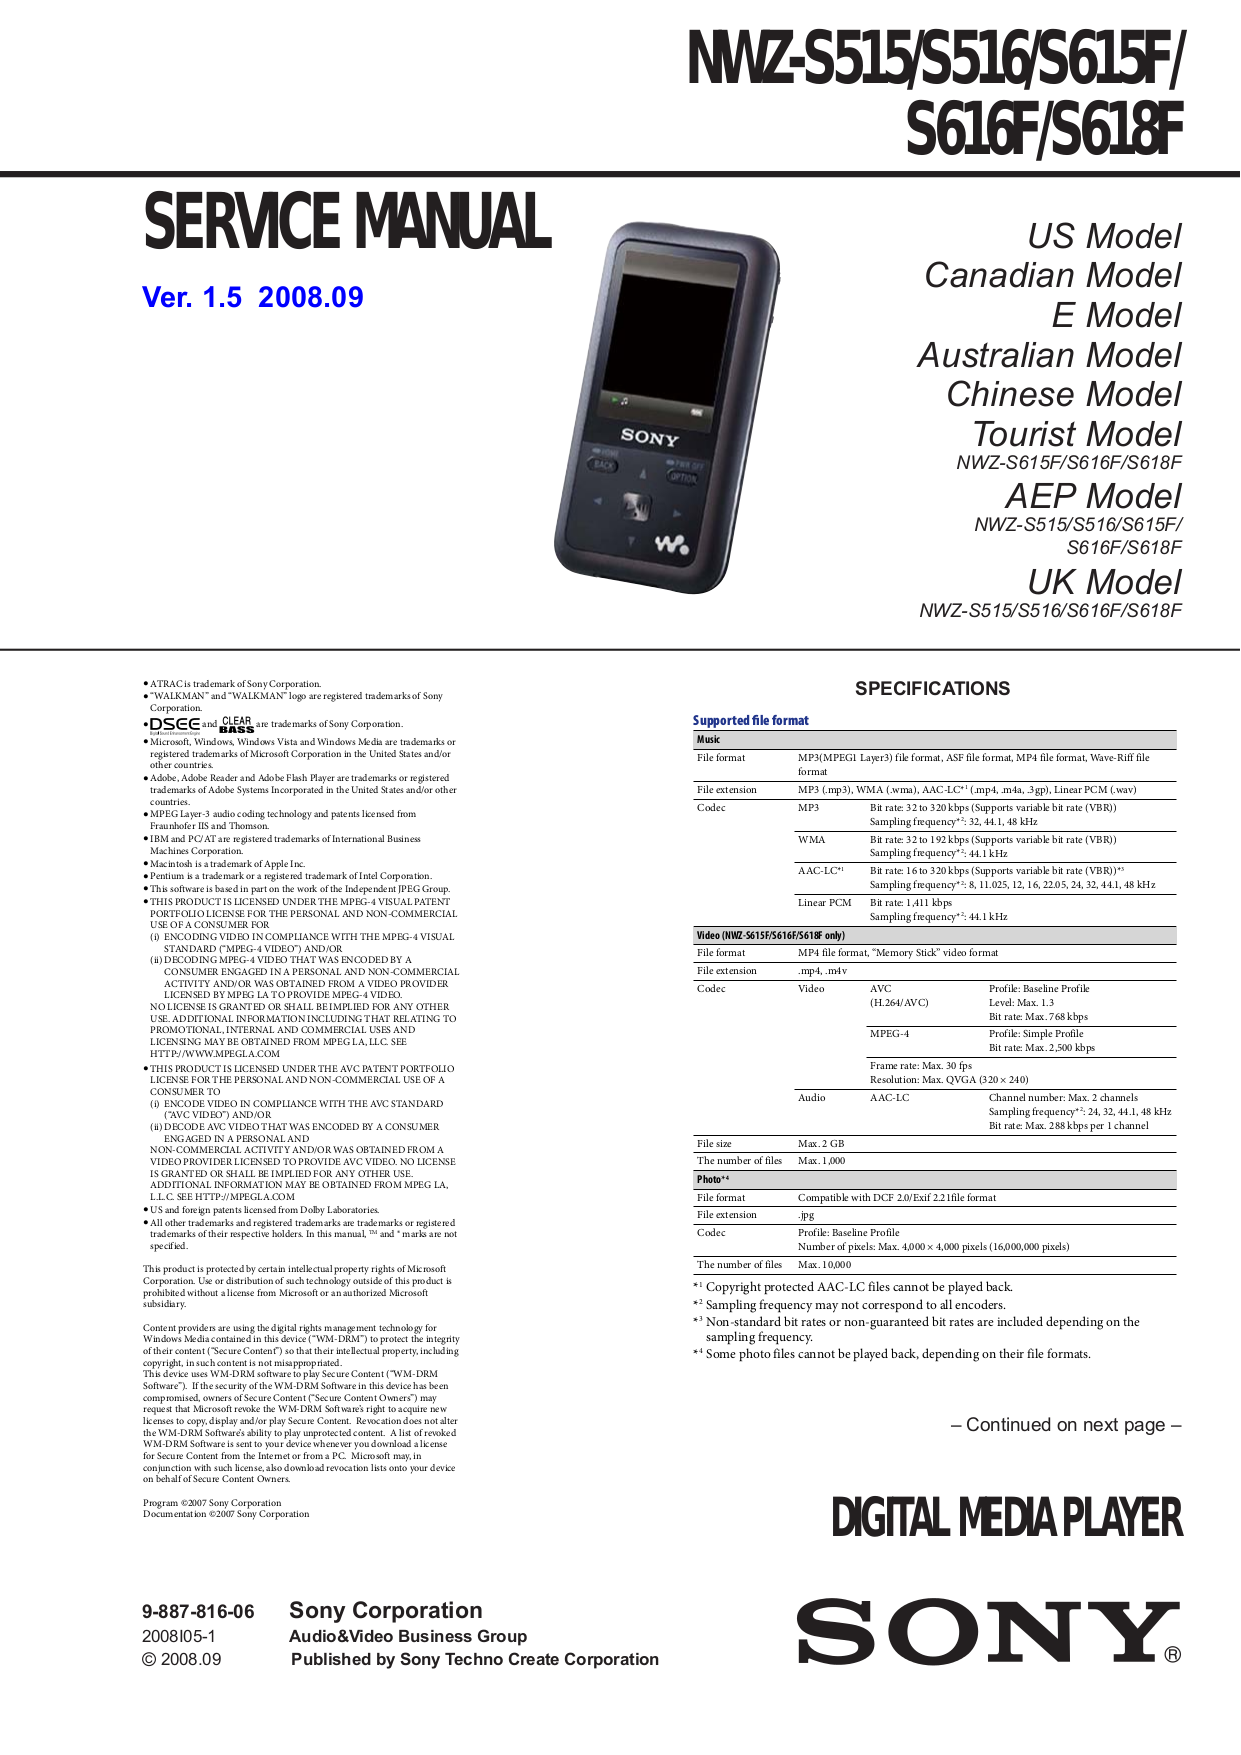 download free pdf for sony walkman nwz s516 mp3 player manual rh umlib com sony walkman mp3 player instruction manual sony walkman mp3 player manual